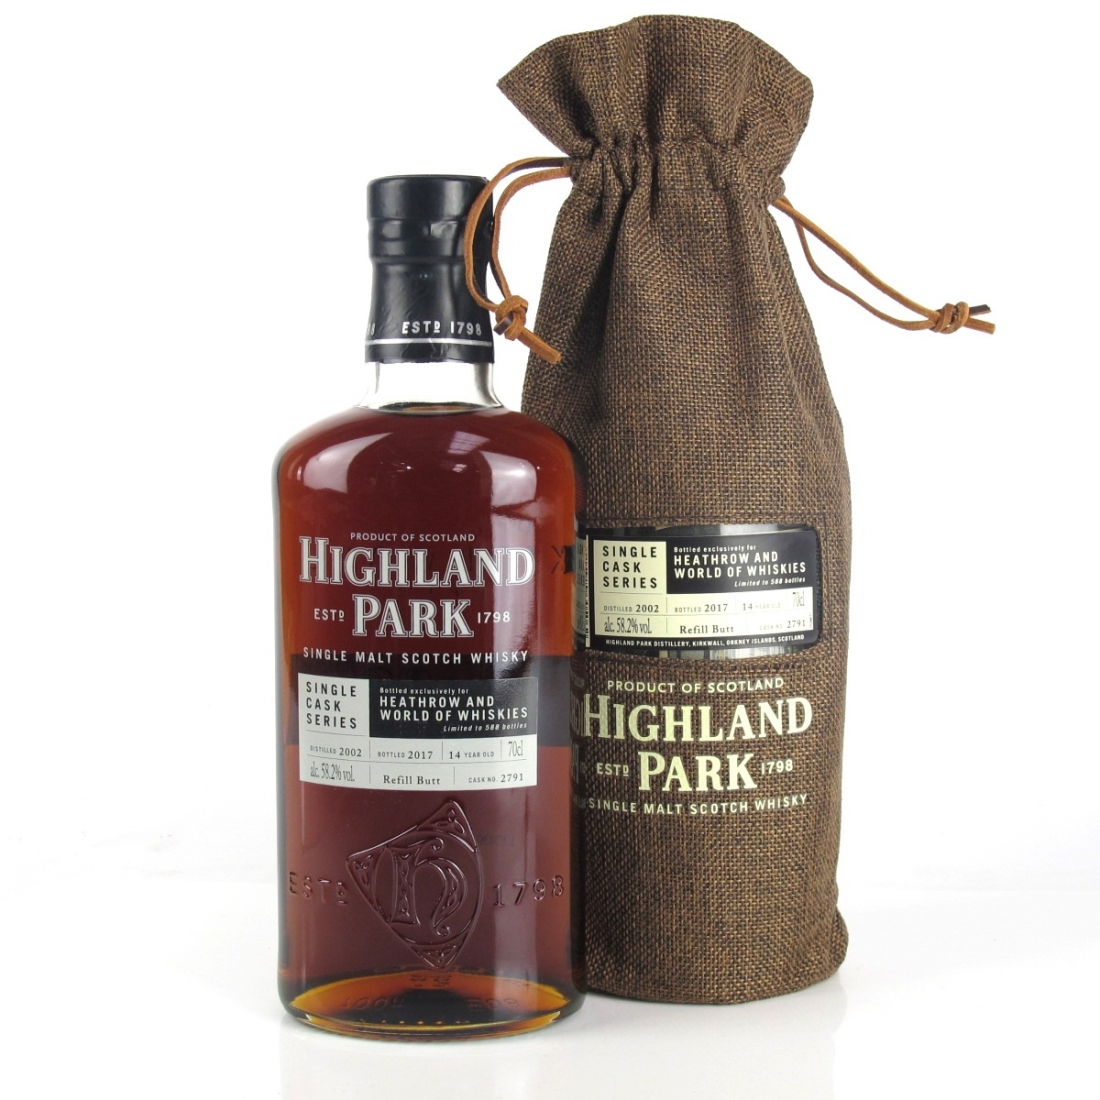 Highland Park 2002 Single Cask 14 Year Old #2791 / Heathrow and World of Whiskies